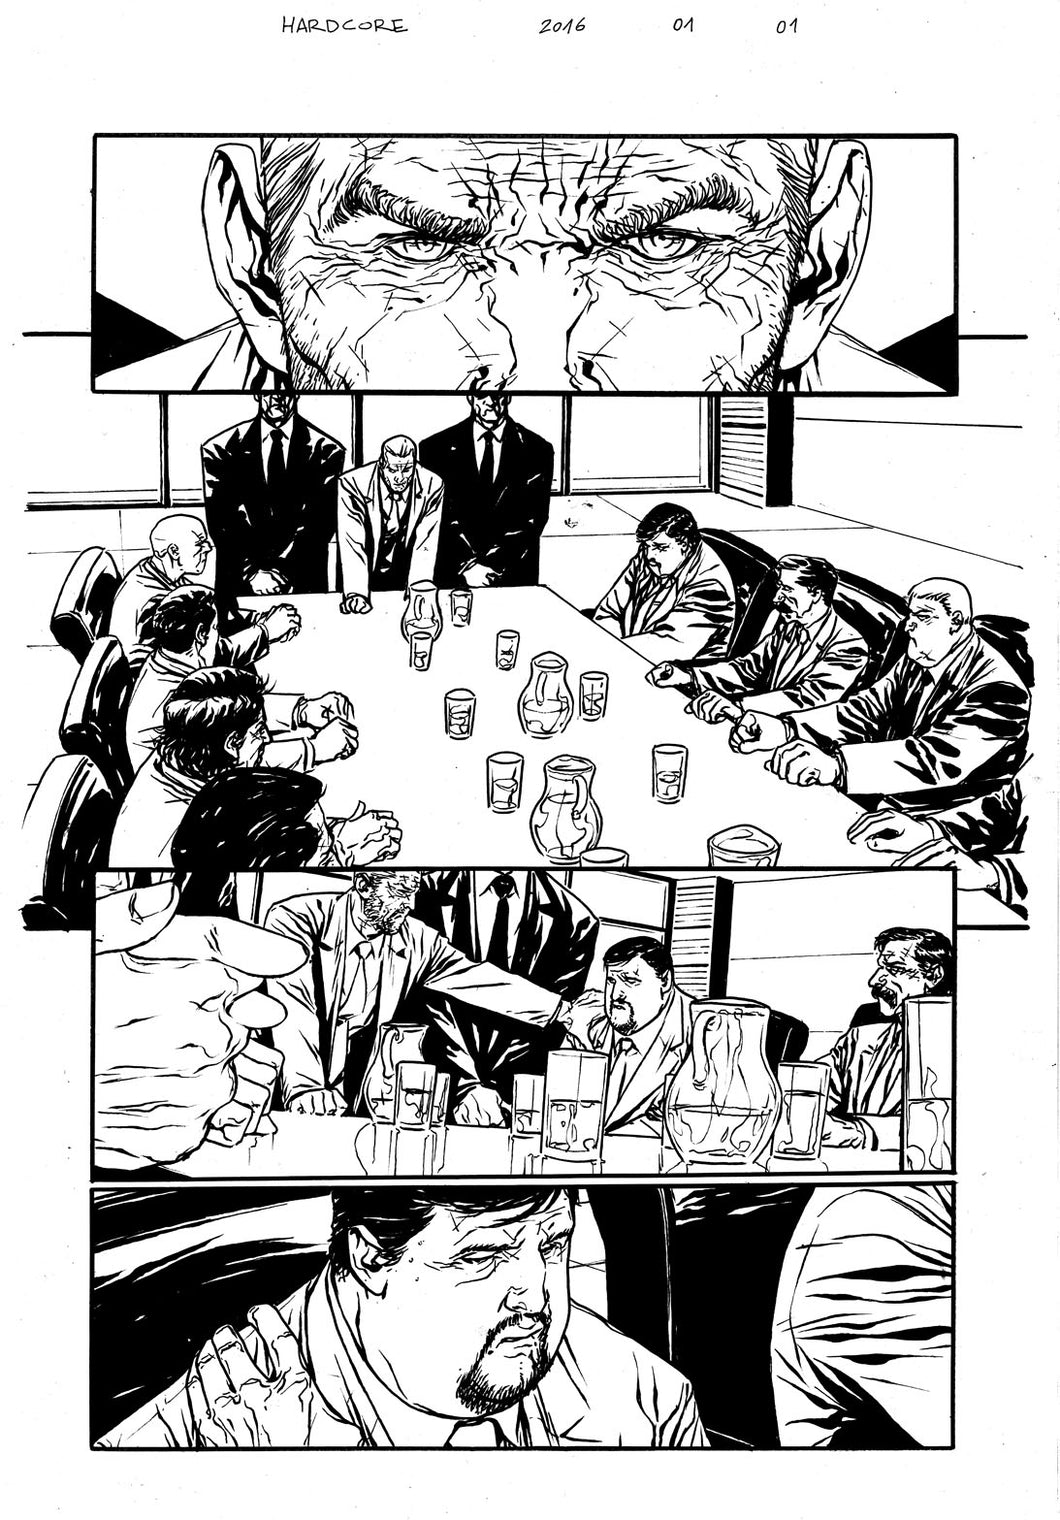 Hardcore #1 Original art - Page 01 by Alessandro Vitti